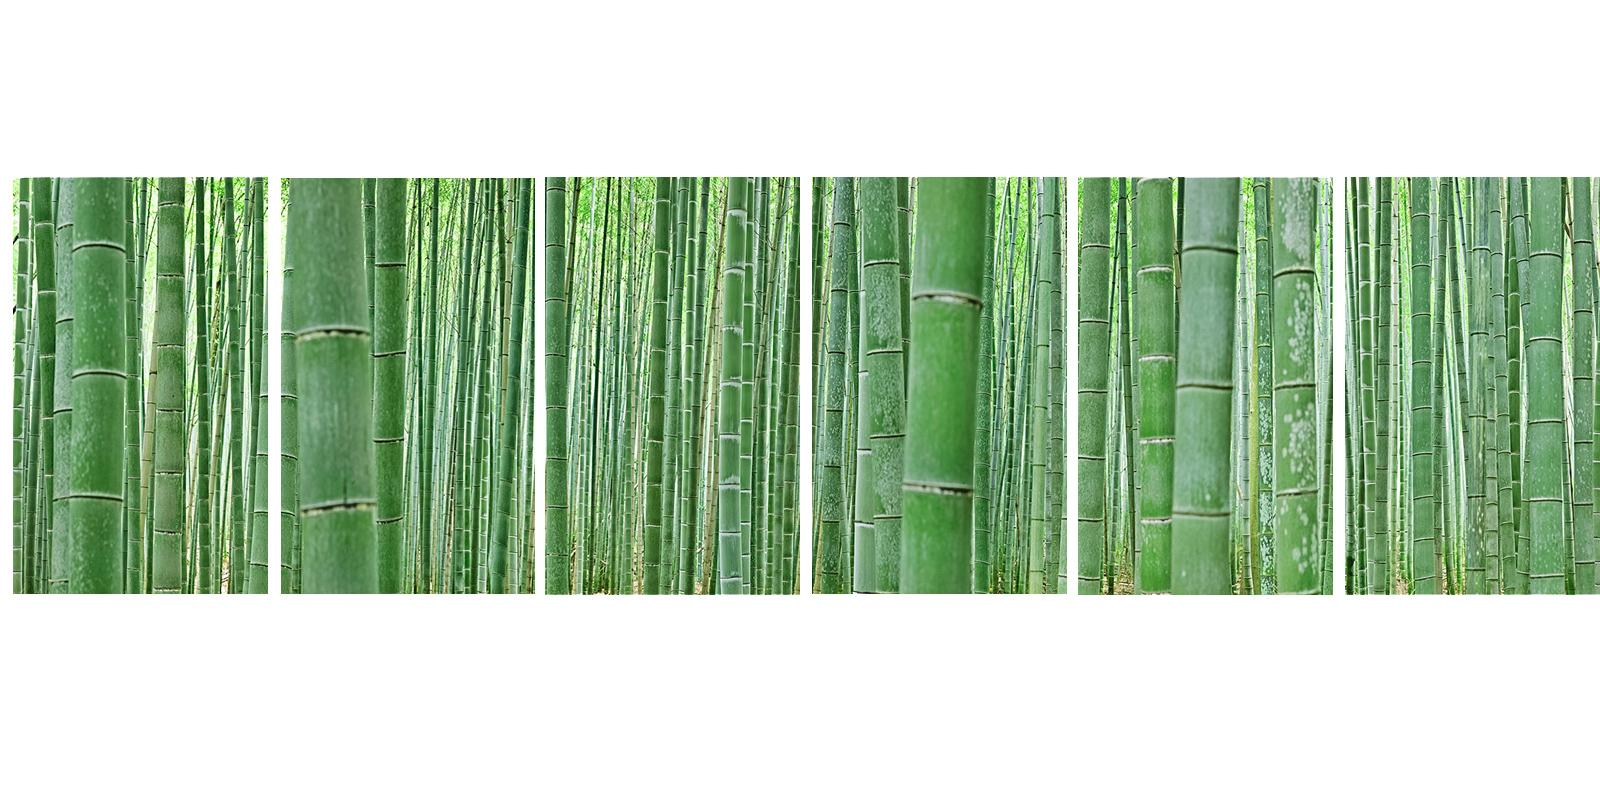 Bamboo Forest (6 panels) - abstract nature observation of iconic Japanese grove